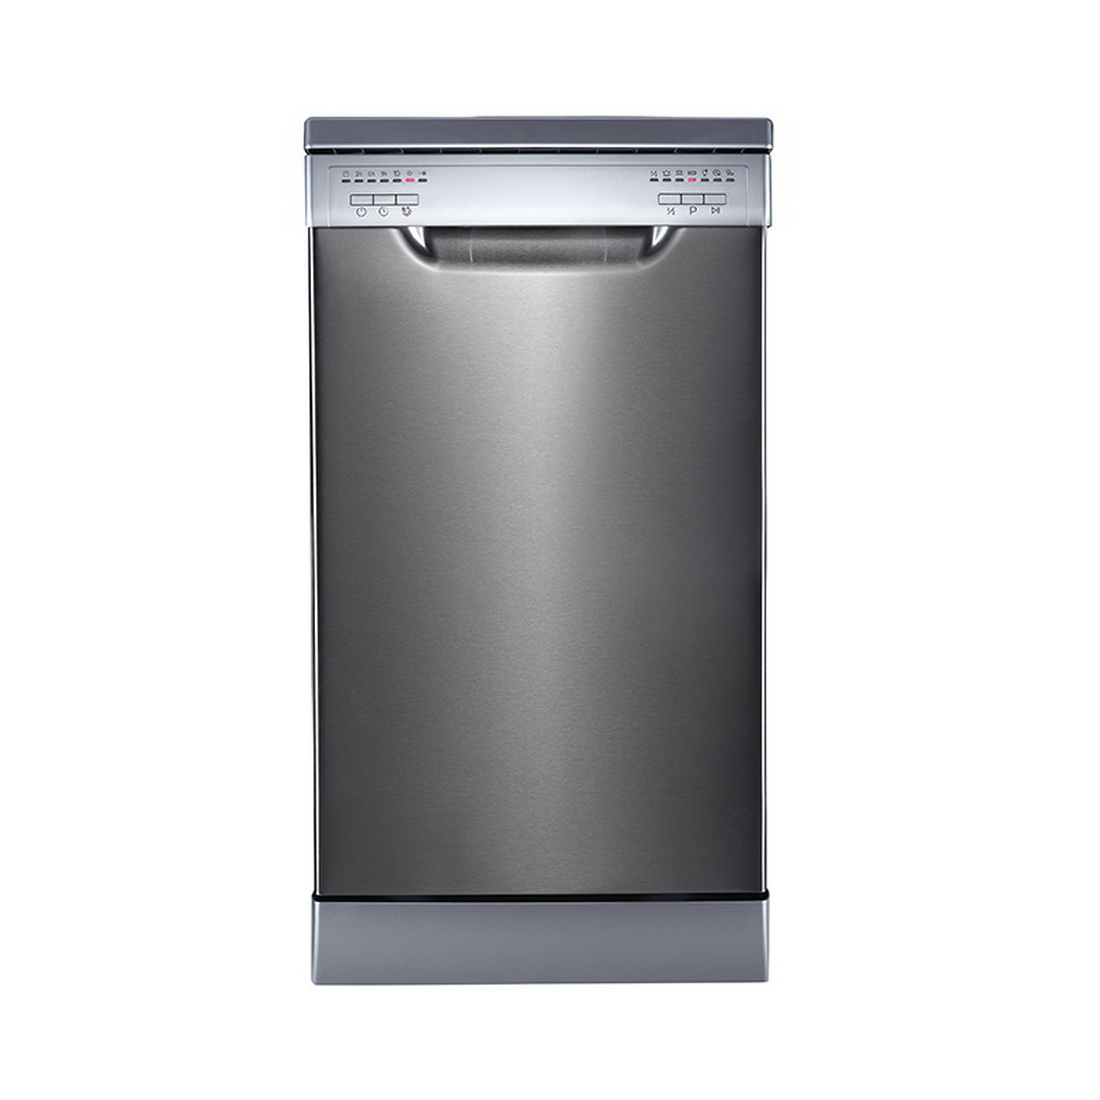 Freestanding Dishwasher 9 Place Setting Stainless Steel JHDW9FS